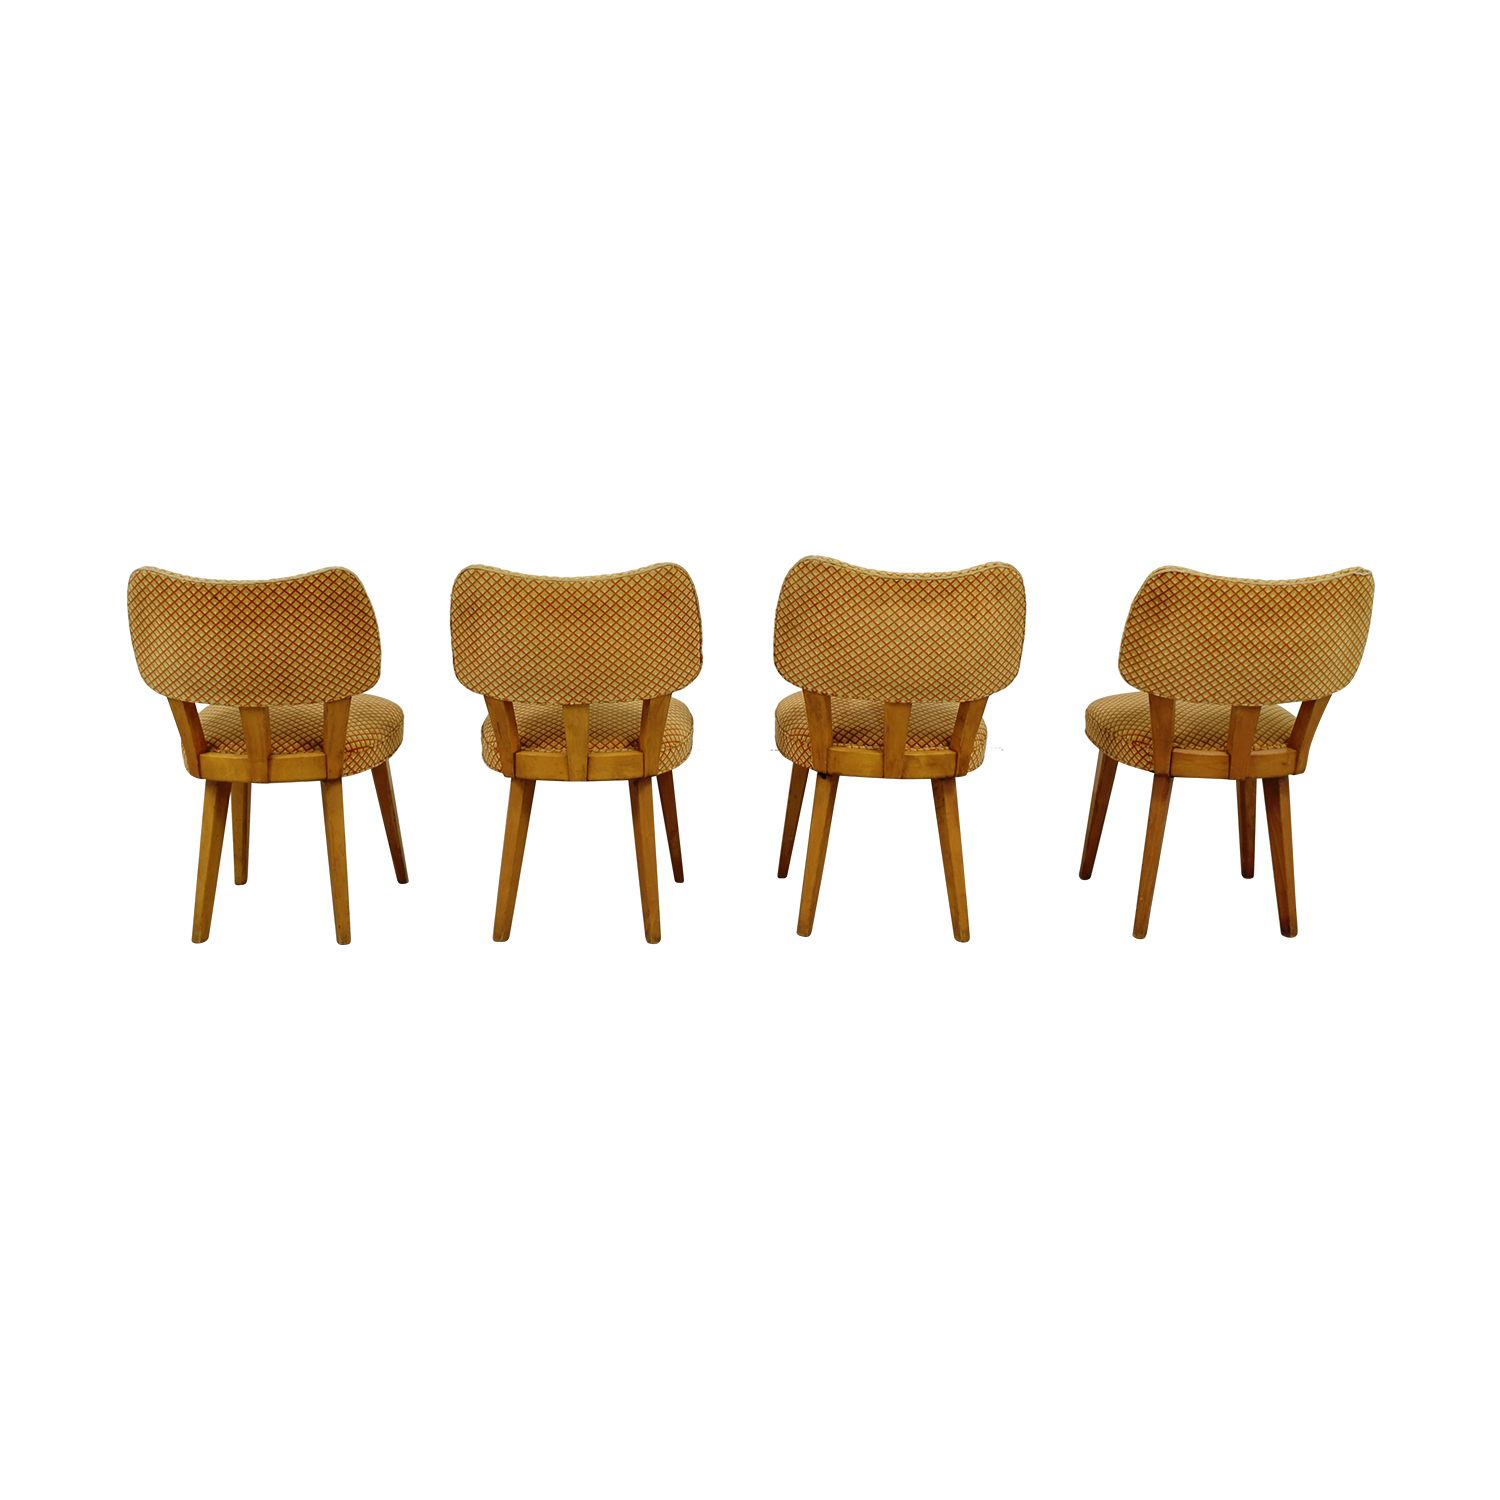 Mid-Century Modern Dining Chairs / Sofas